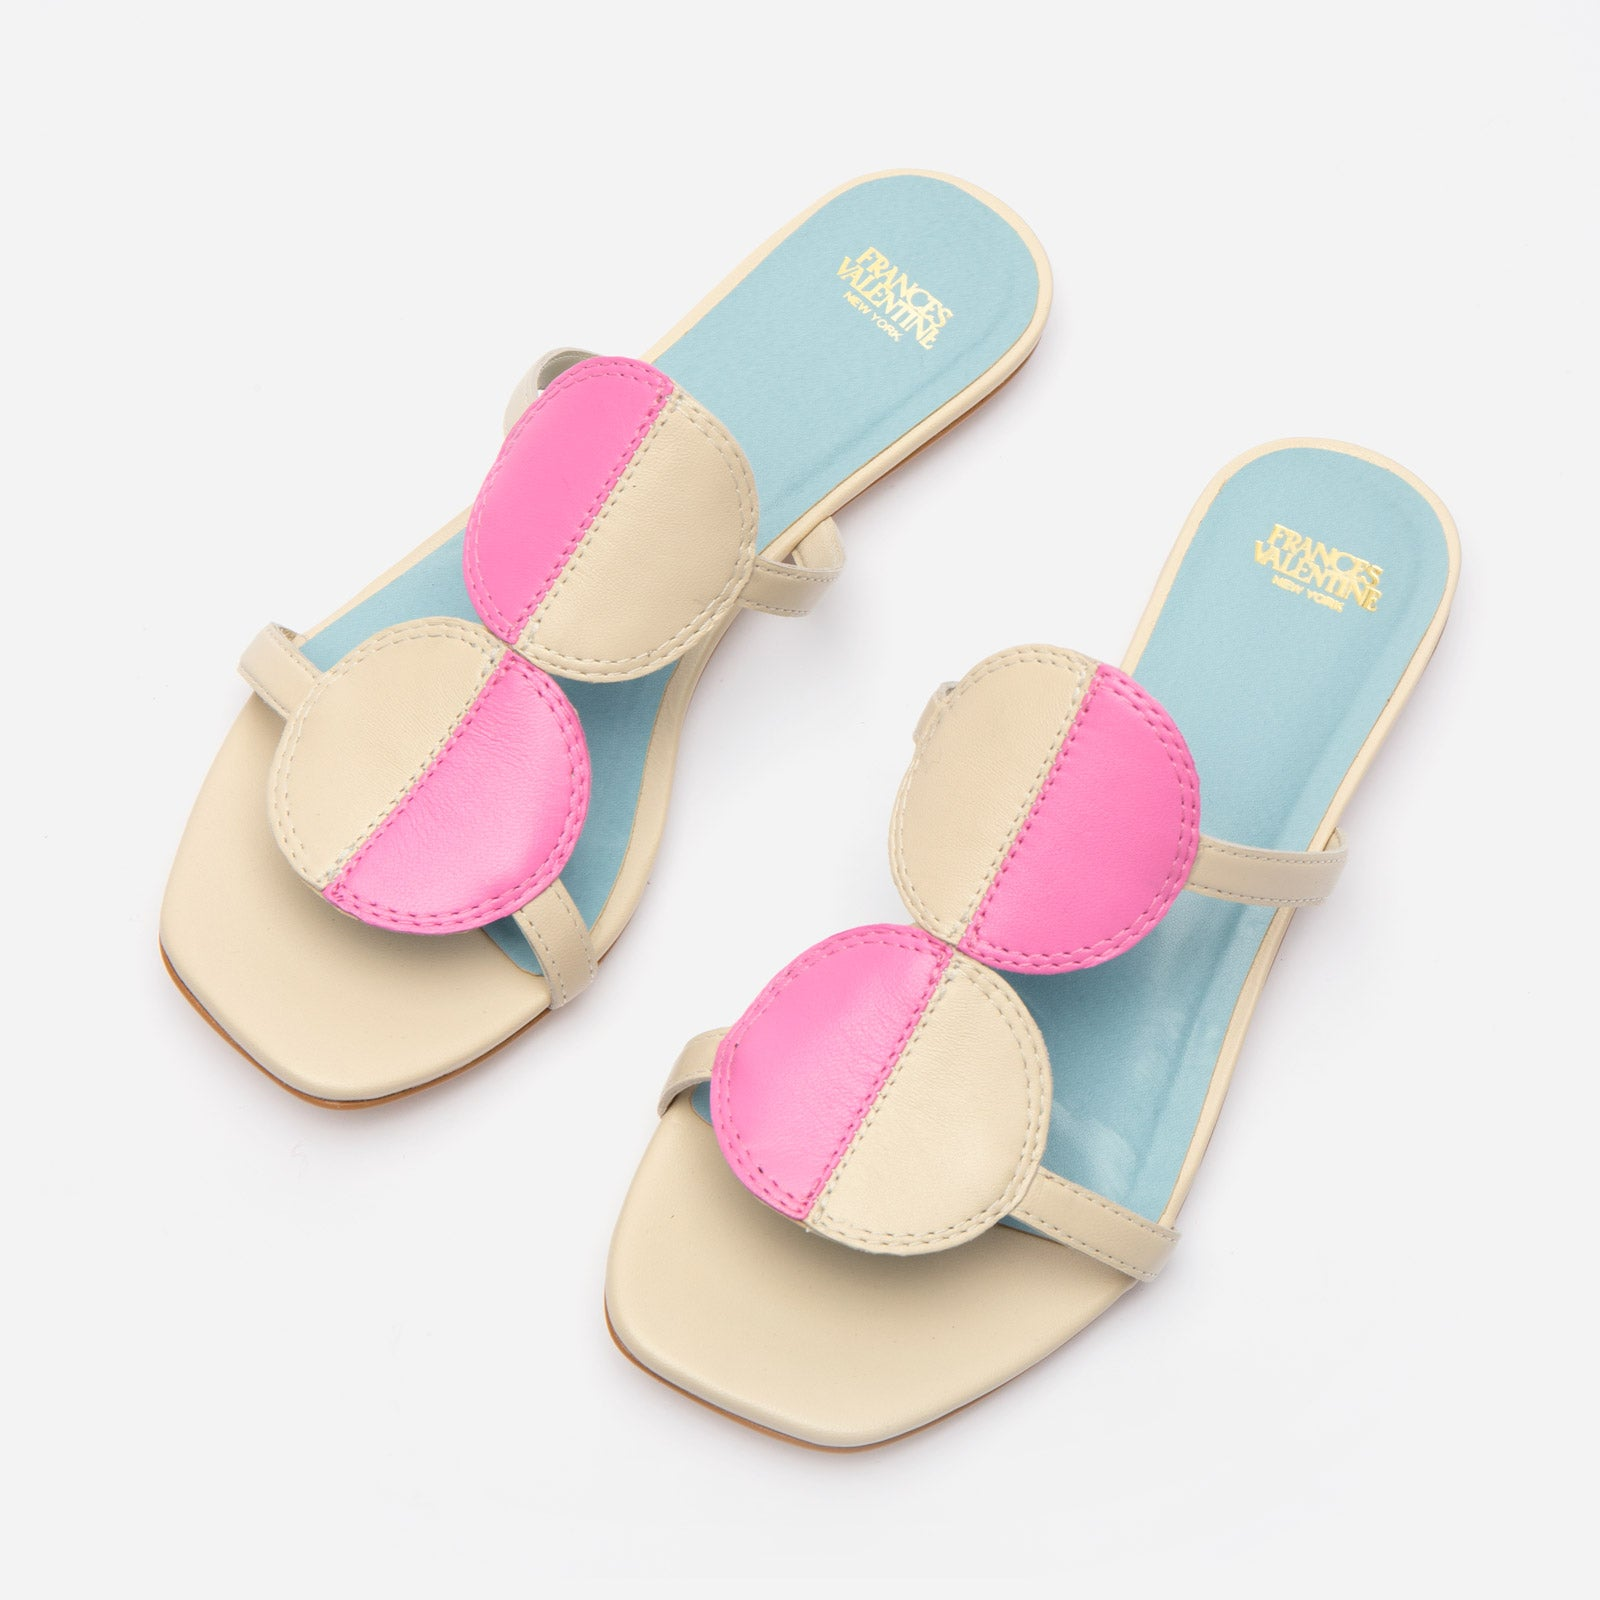 Double Circle Slide Colorblock Pink Oyster - Frances Valentine